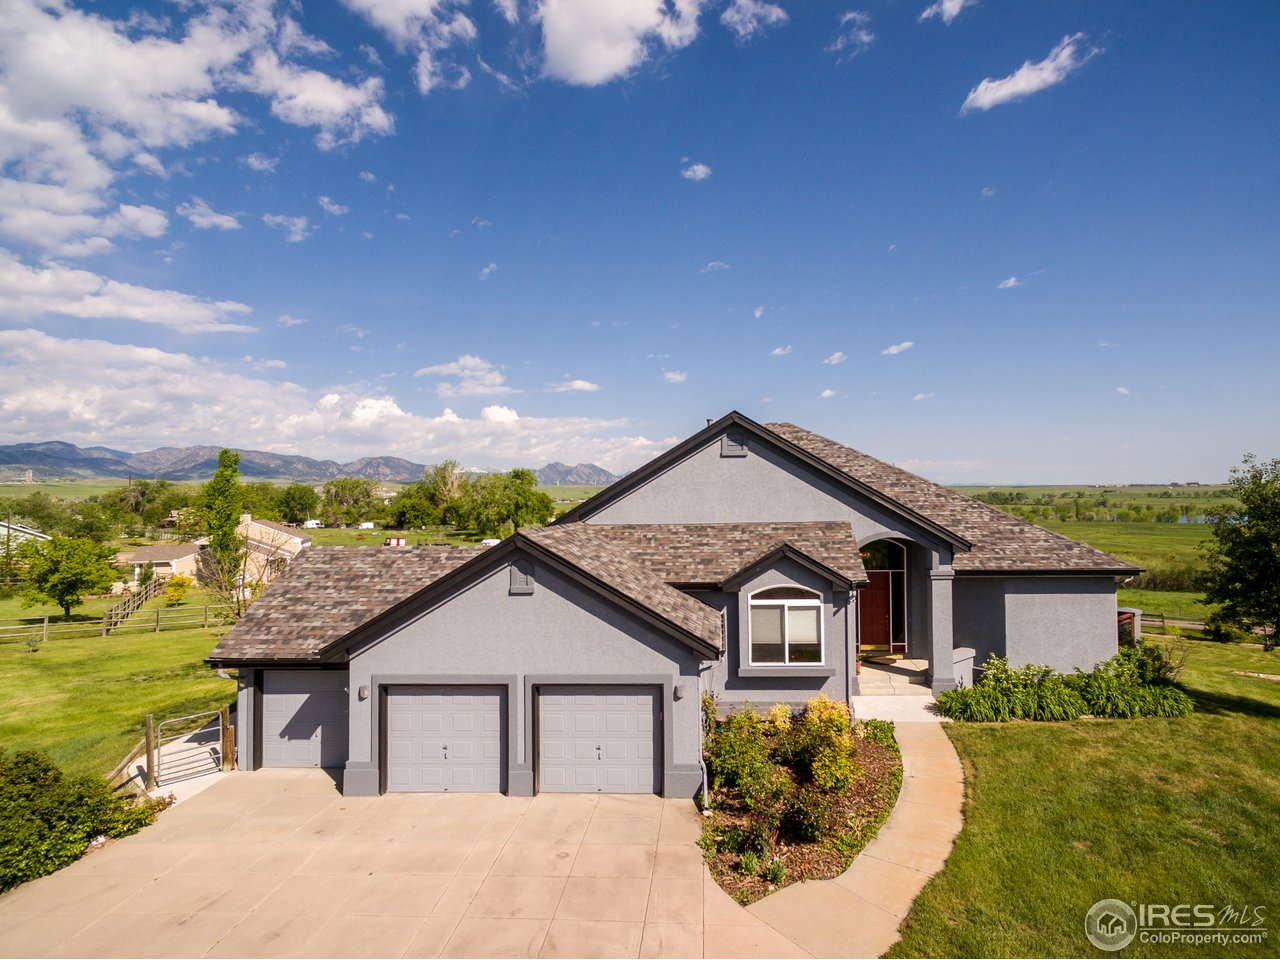 12544 W 87th Ave, Arvada CO 80005